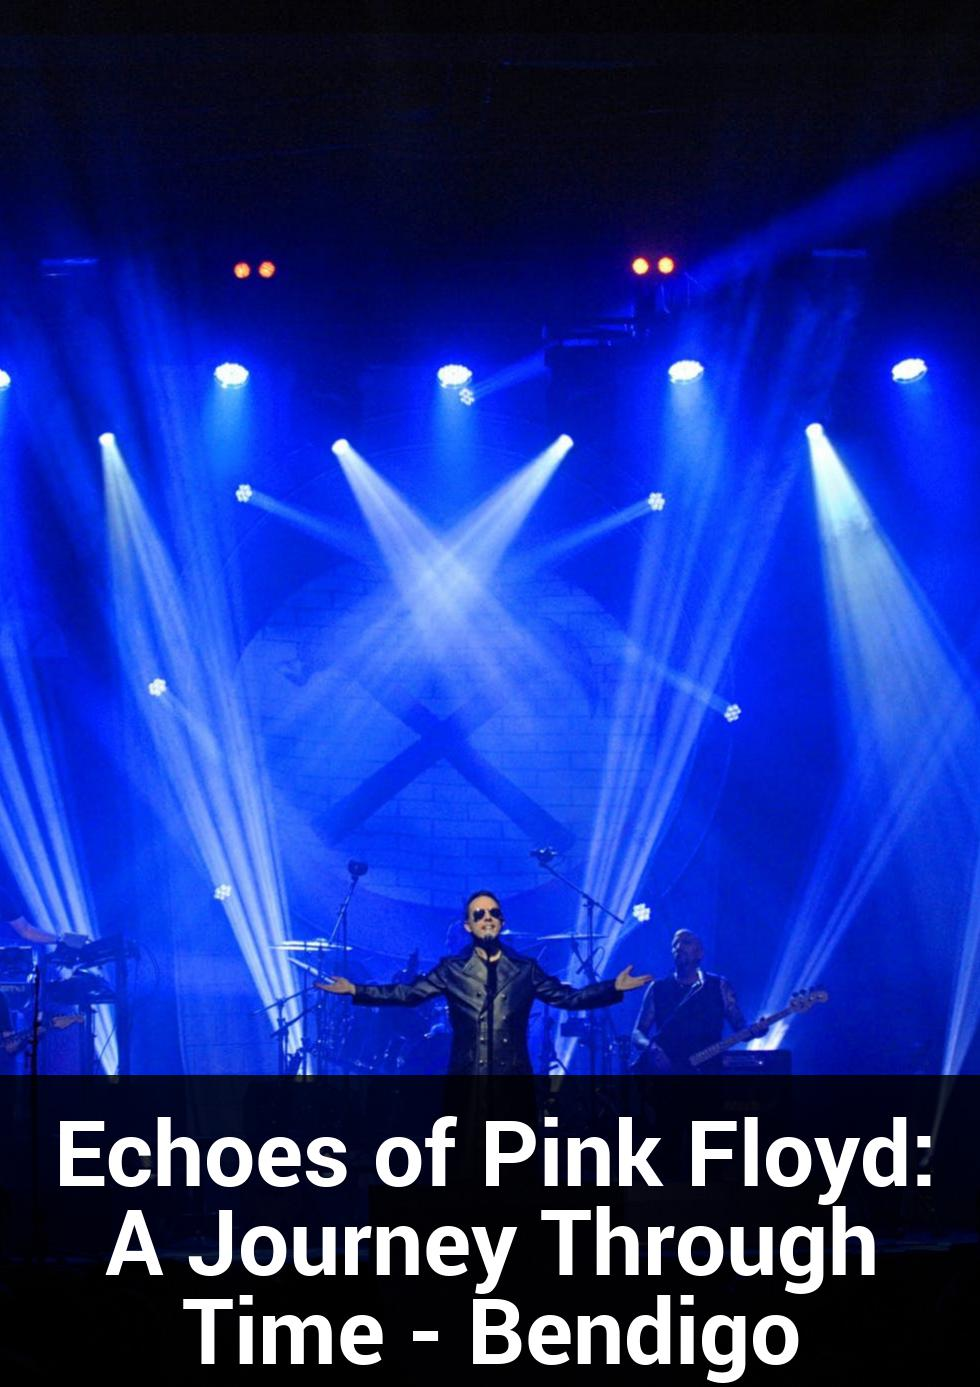 Echoes of Pink Floyd: A Journey Through Time - Bendigo at Capital Theatre